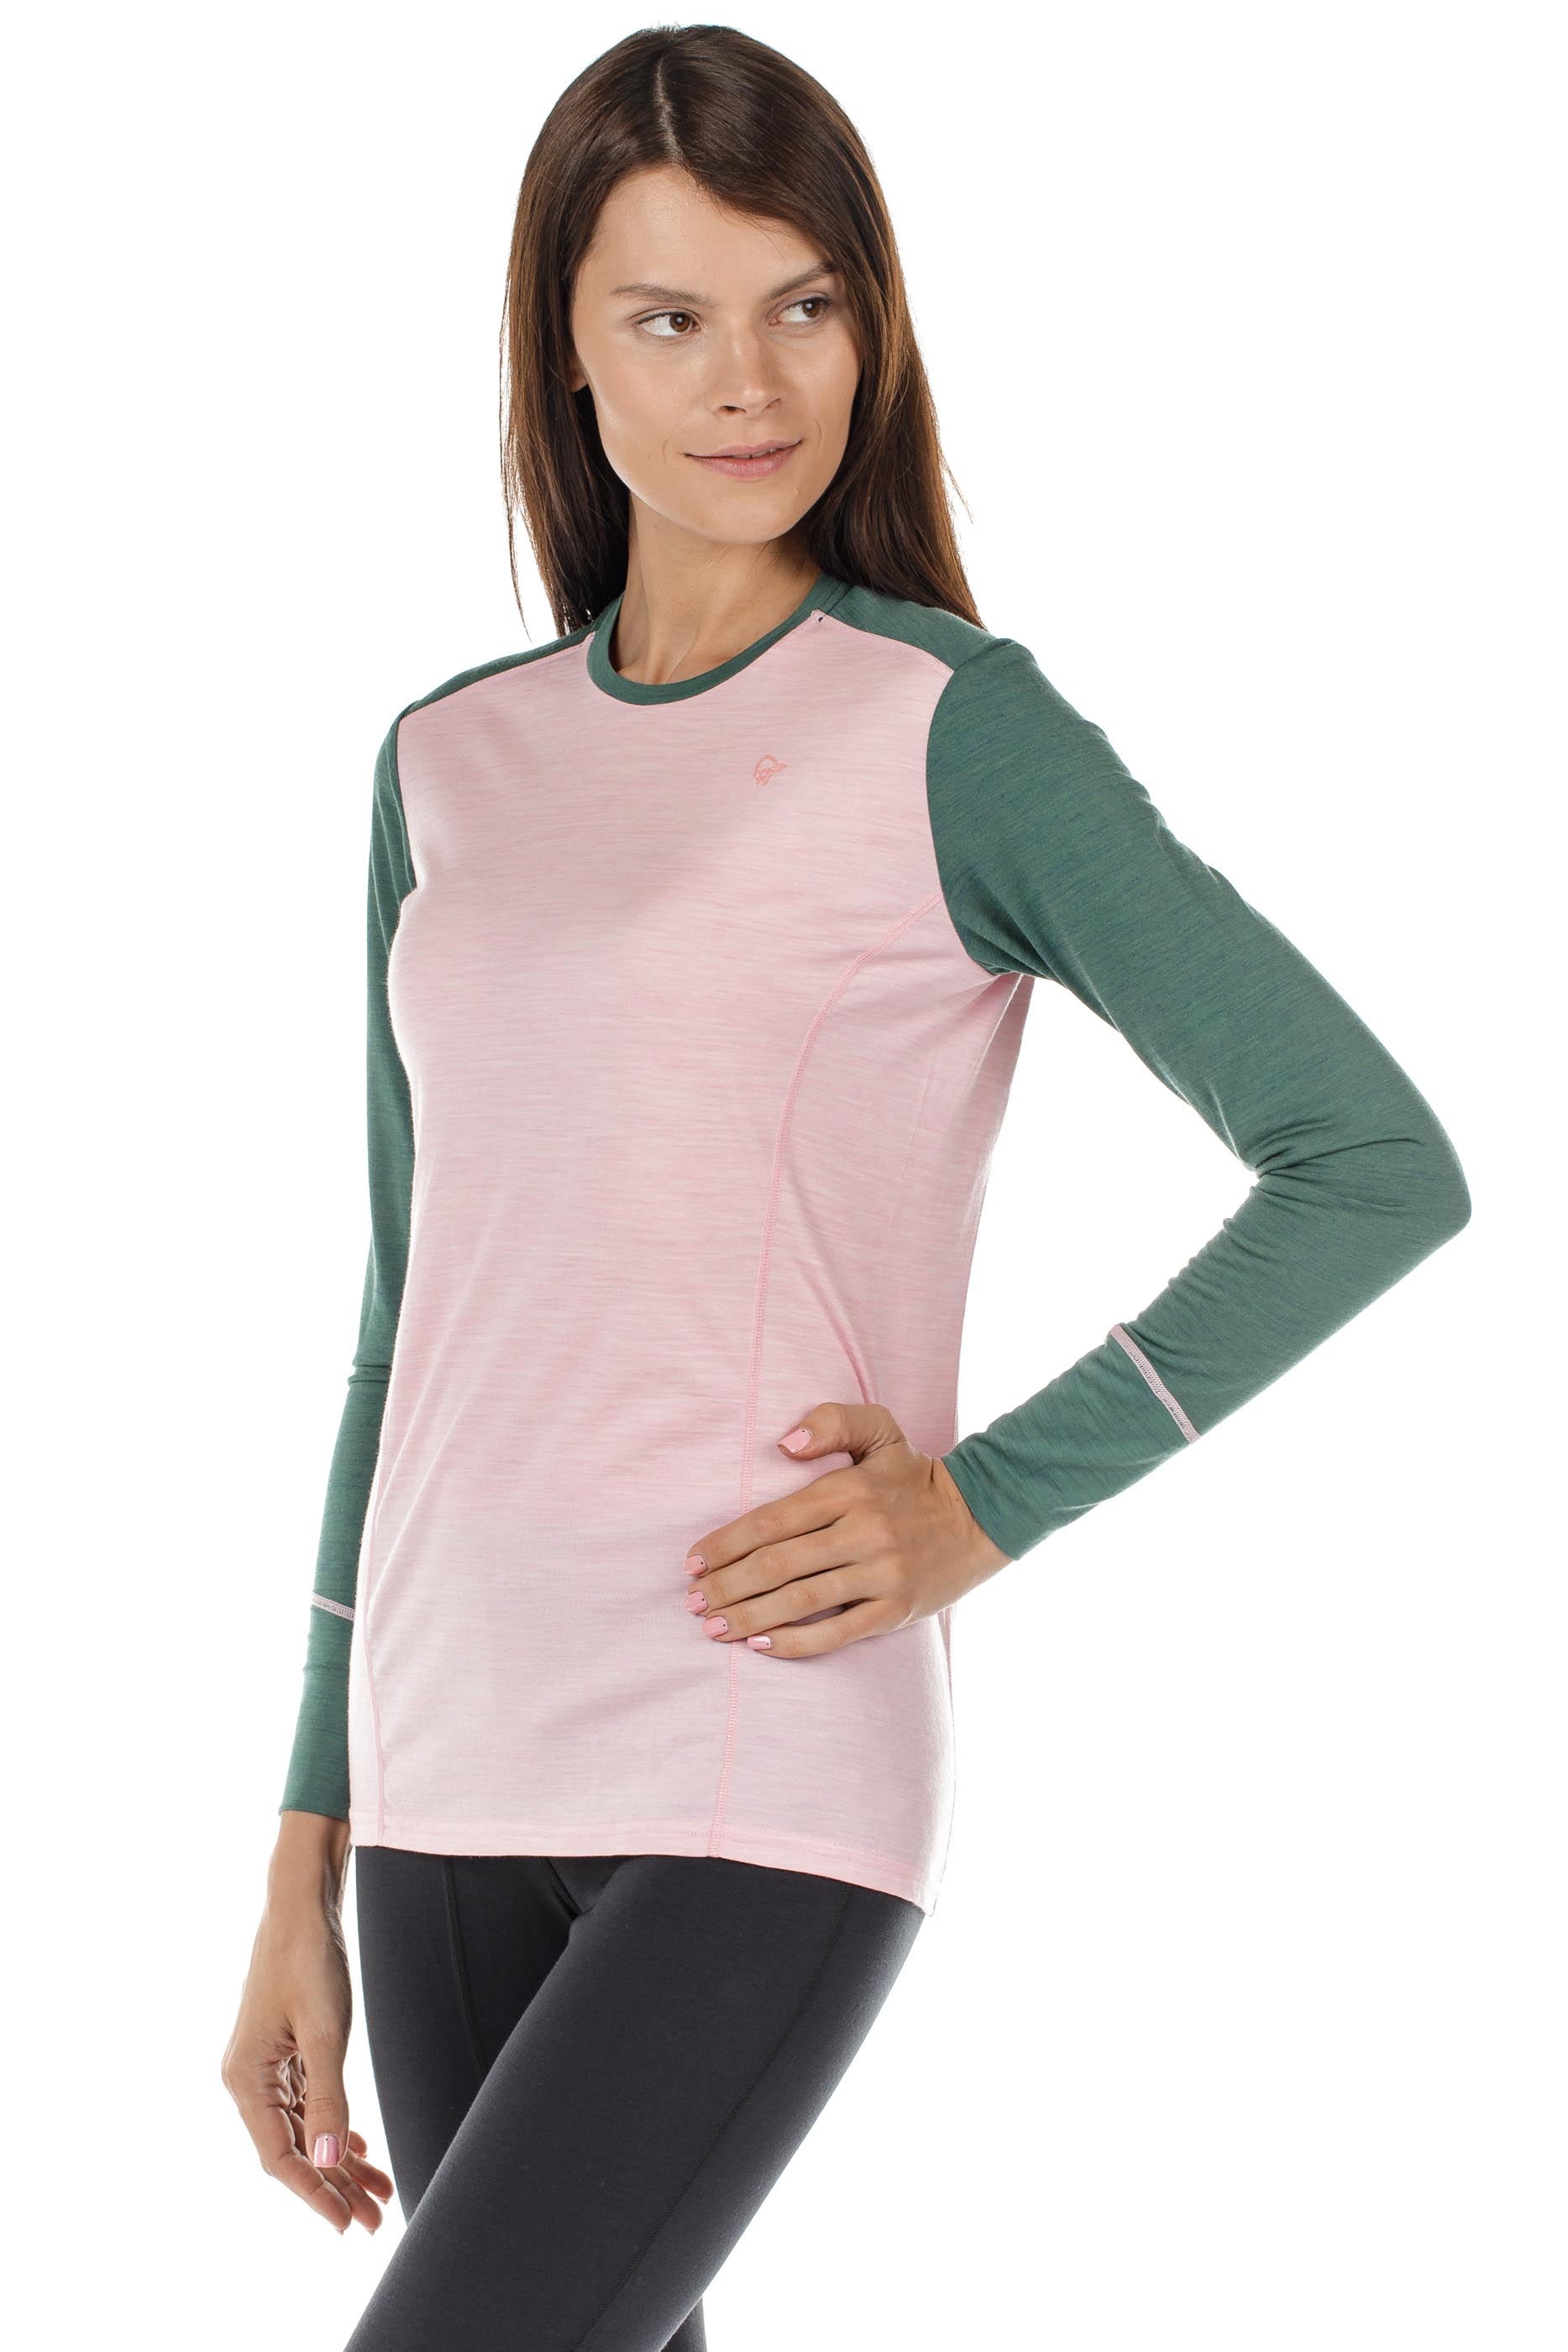 Футболка женская Norrona Wool Round Neck Candy Pink - Фото 3 большая